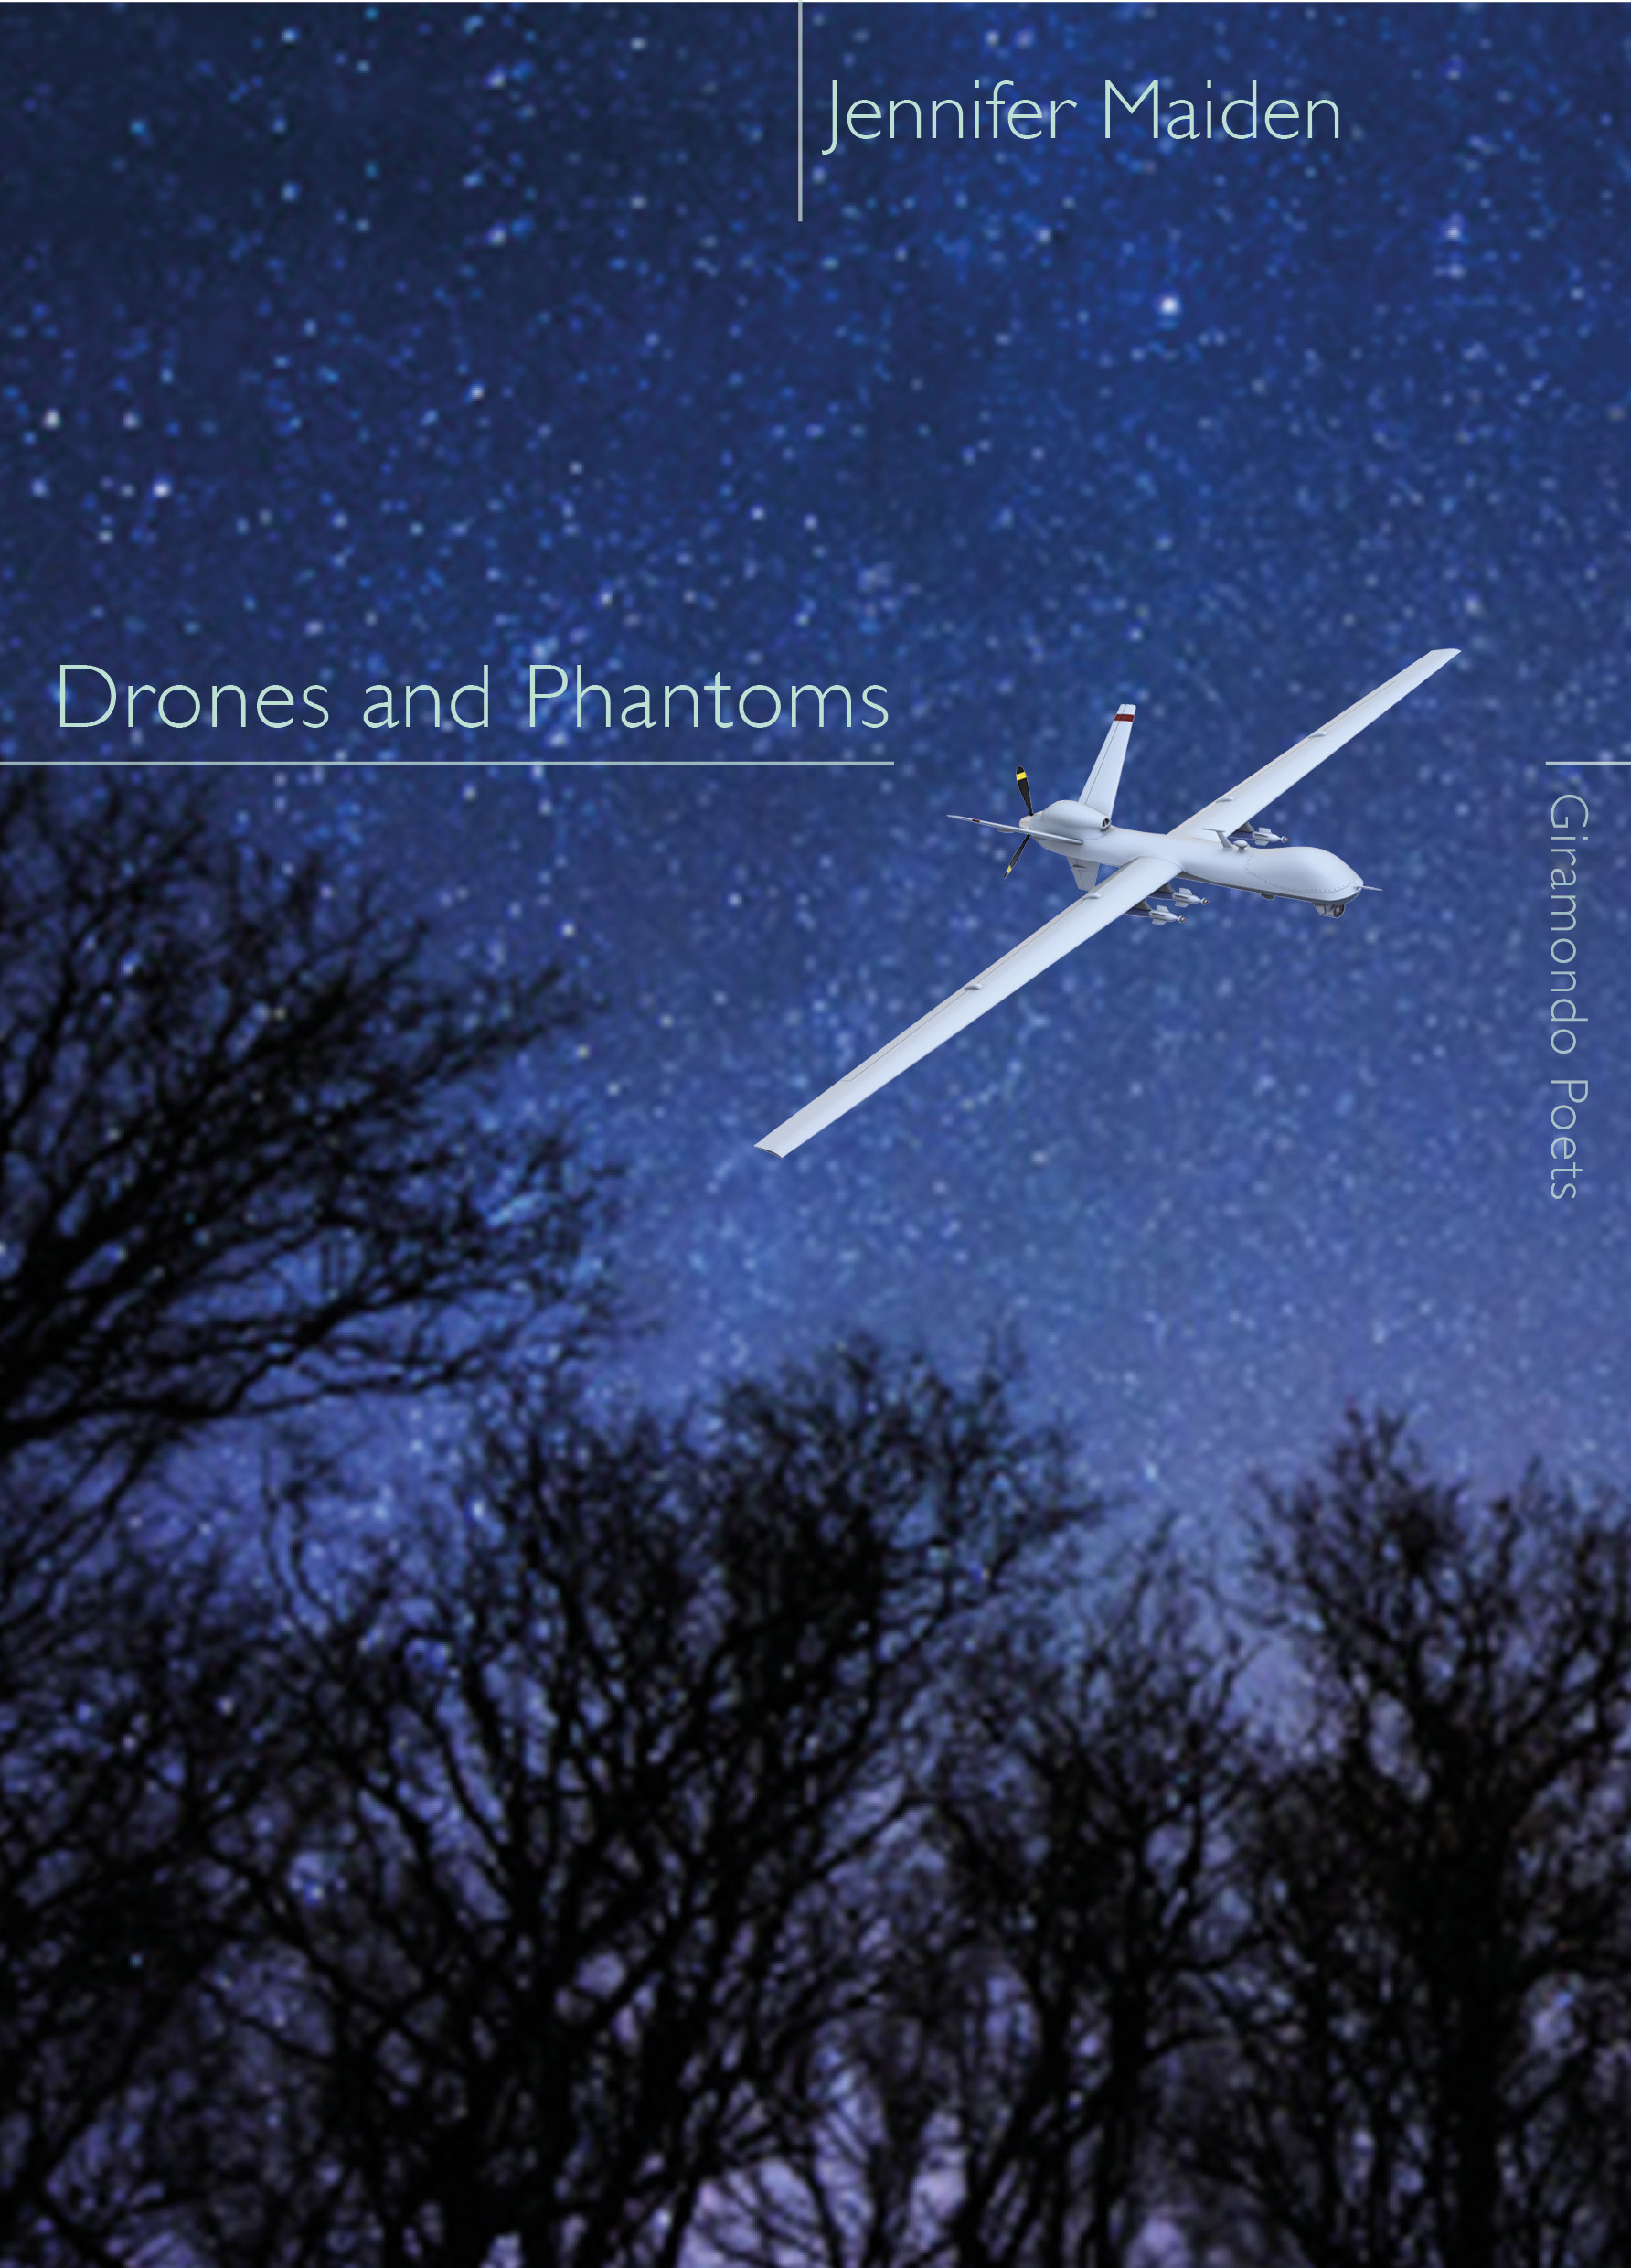 Drones and Phantoms